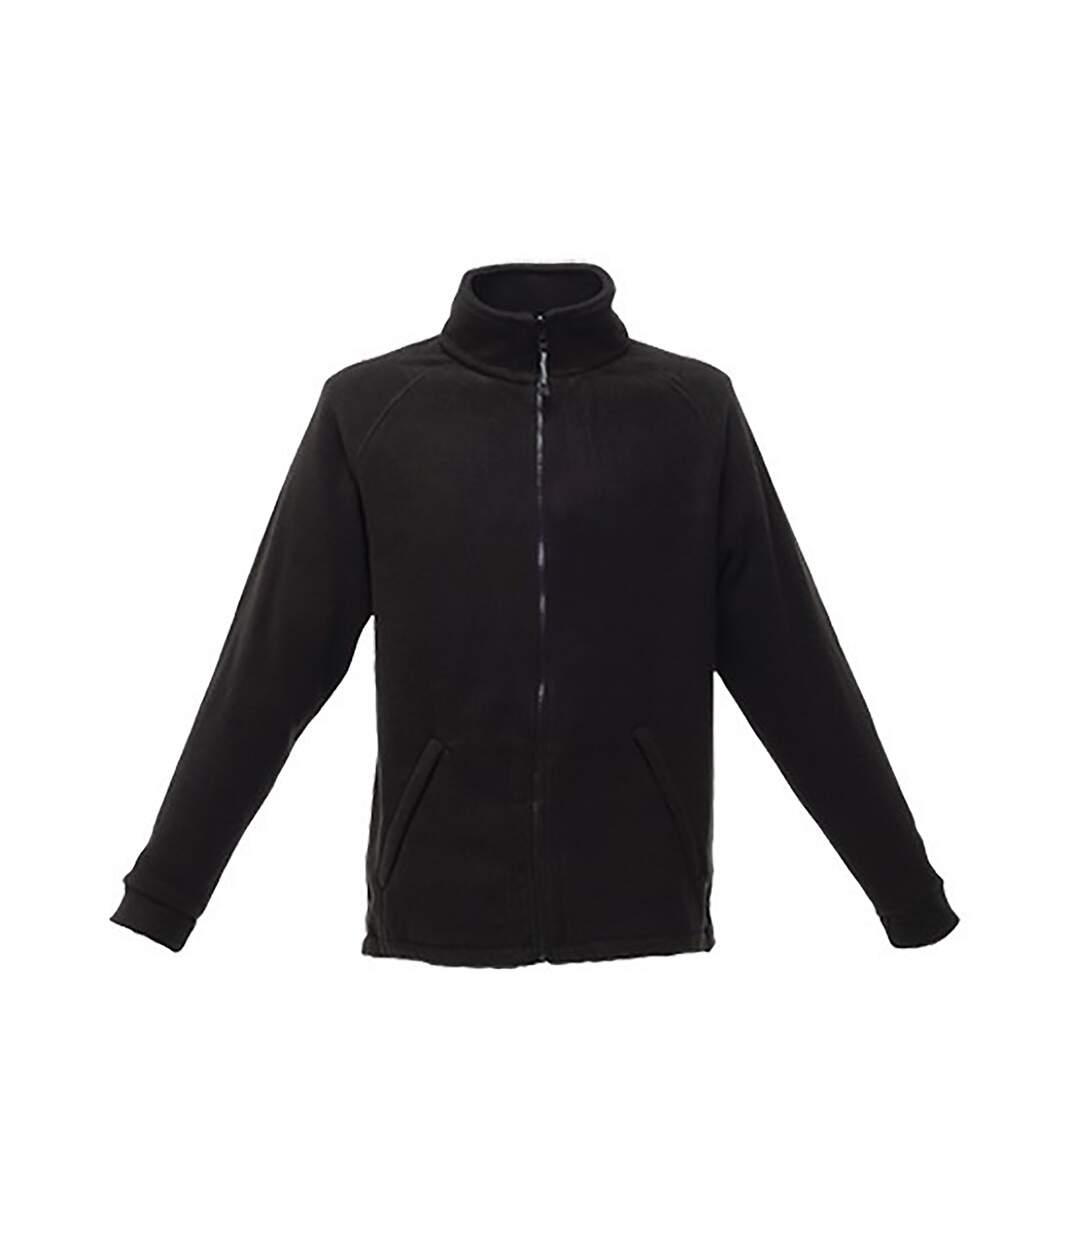 Regatta Great Outdoors Unisex Sigma Symmetry Heavyweight Anti-Pill Fleece Zip Up Jacket (380 GSM) (Black) - UTRG1843